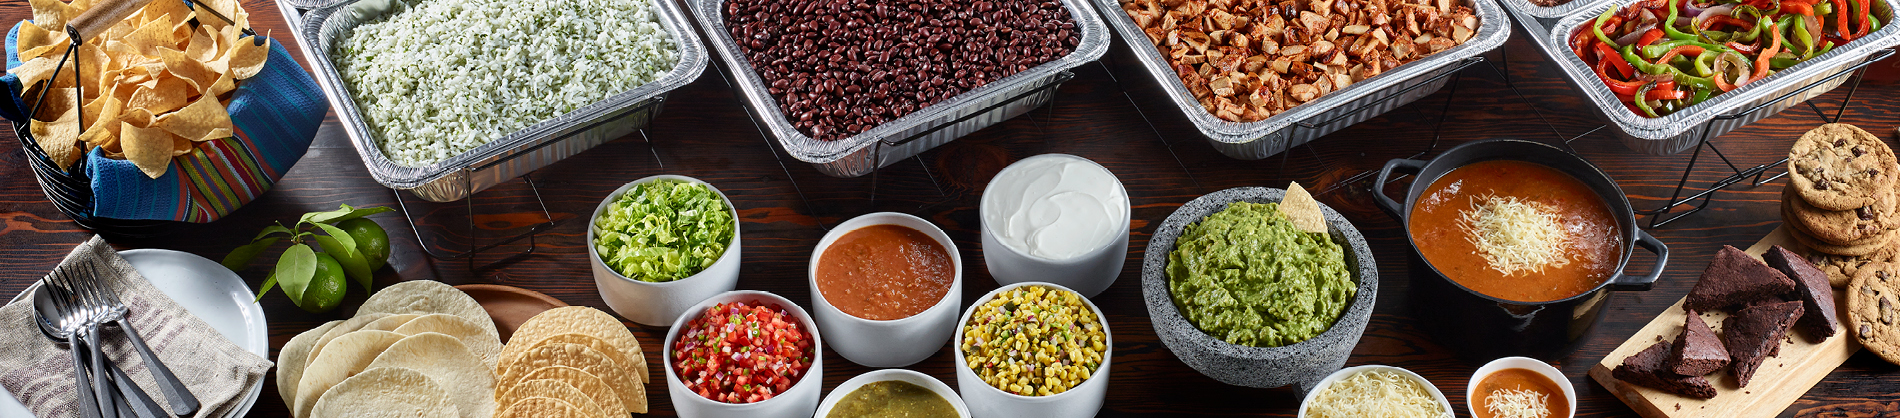 QDOBA Catering | Flavorful Mexican Food For Any Event